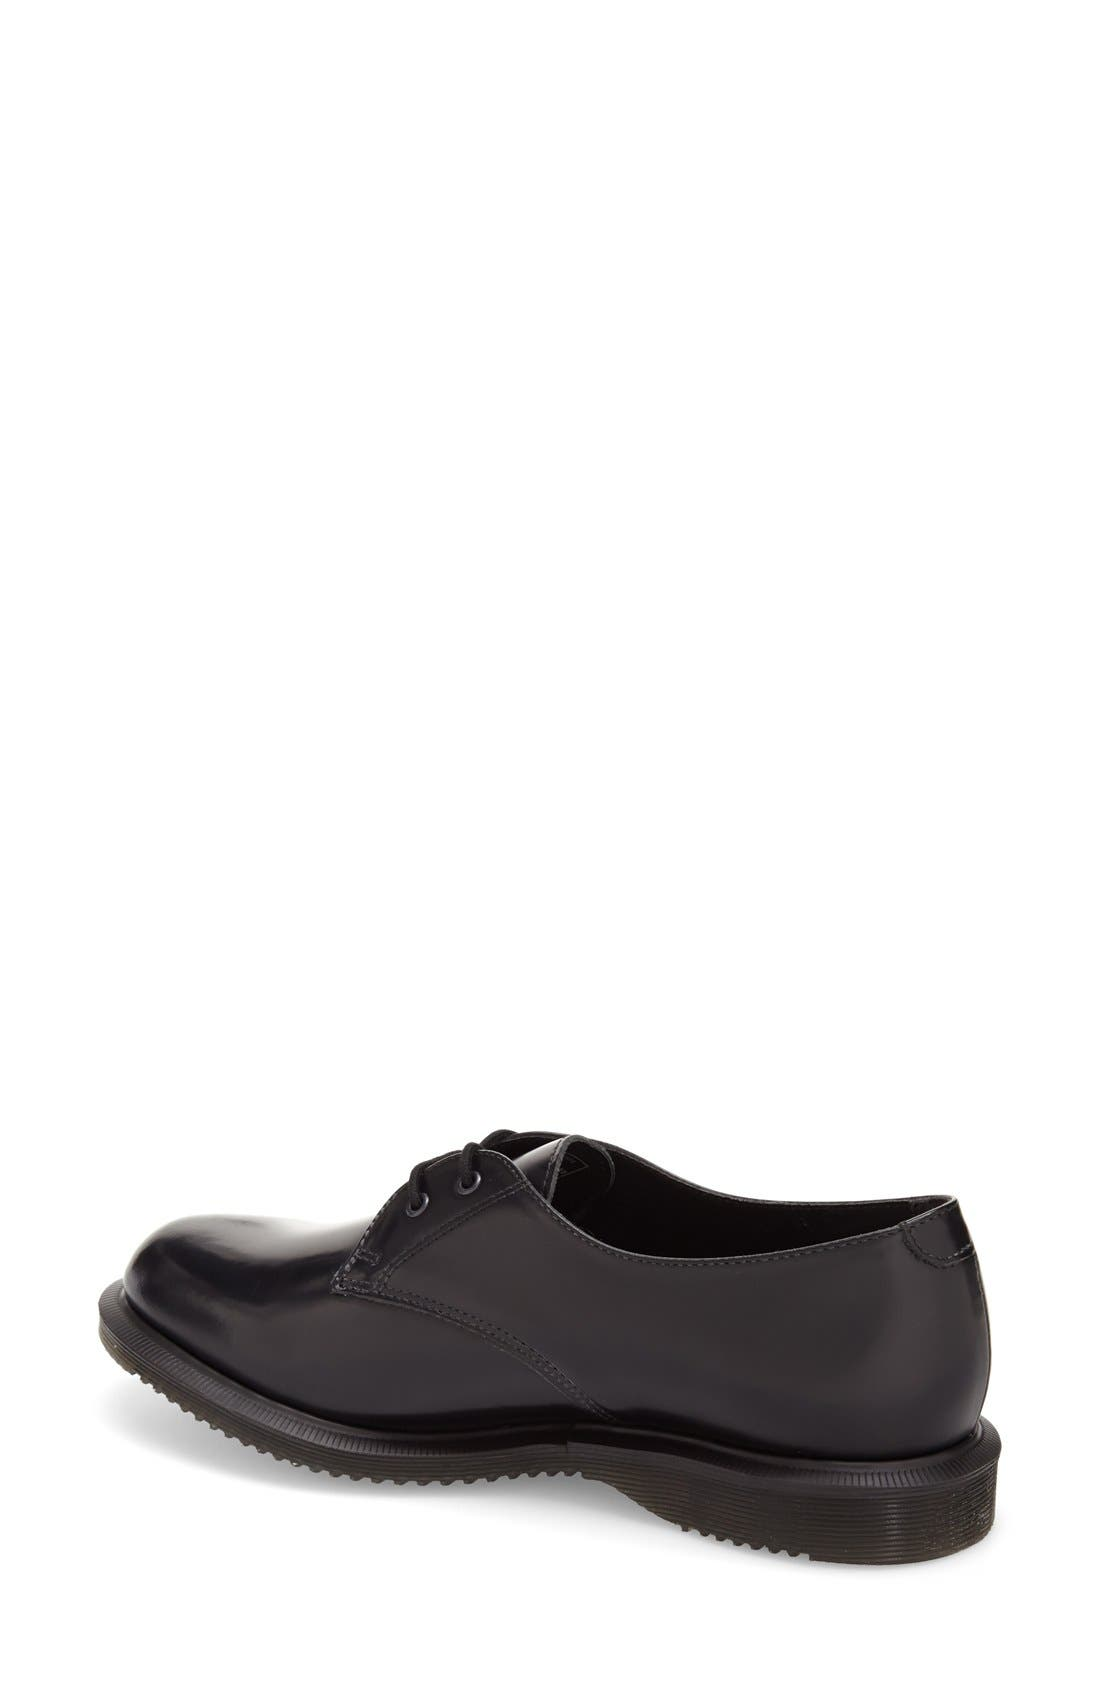 Alternate Image 2  - Dr. Martens 'Brook' Oxford Flat (Women)